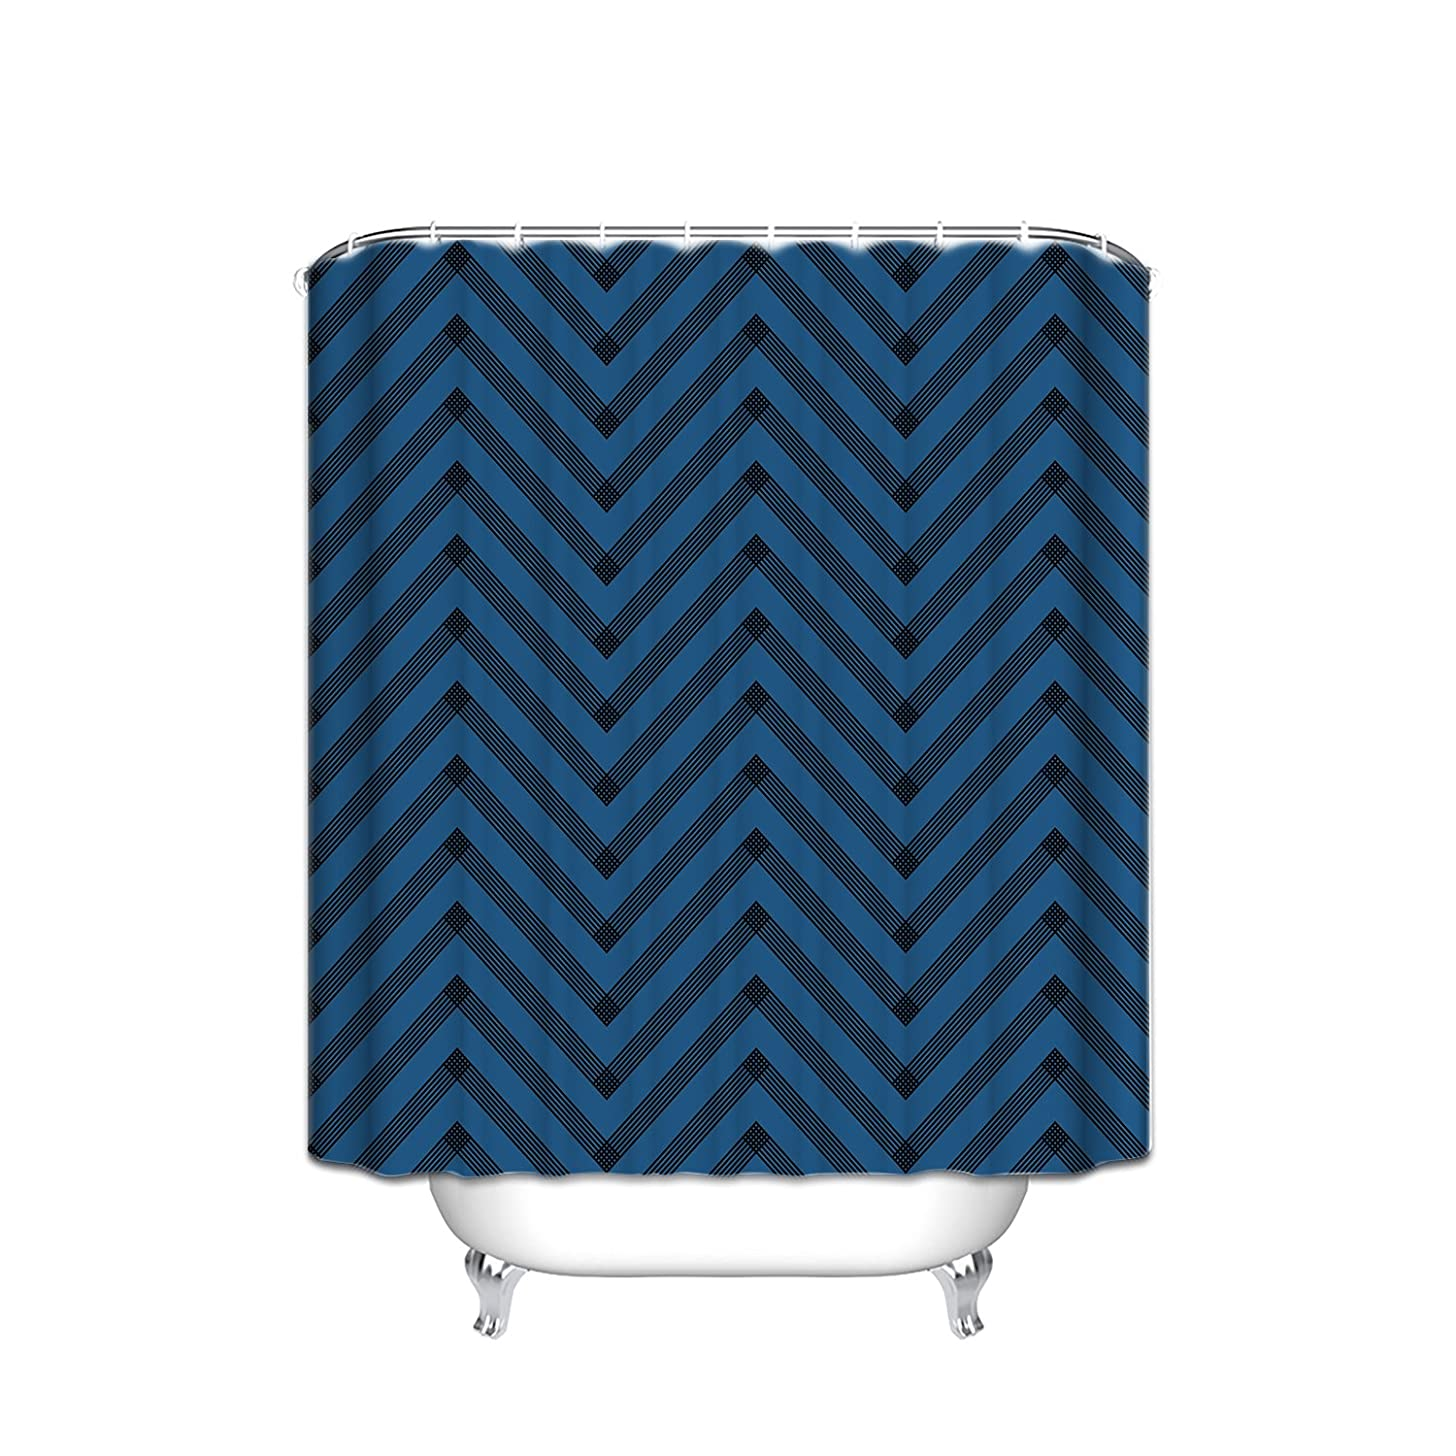 Chevron Lattice Zig Zag Stripe Geometric Shower Curtain Geometric Illustration Decorations , Polyester Fabric Bathroom Set With Hooks, Mildewproof, Cleanable, Odorless, Spa Bathroom,Blue Black